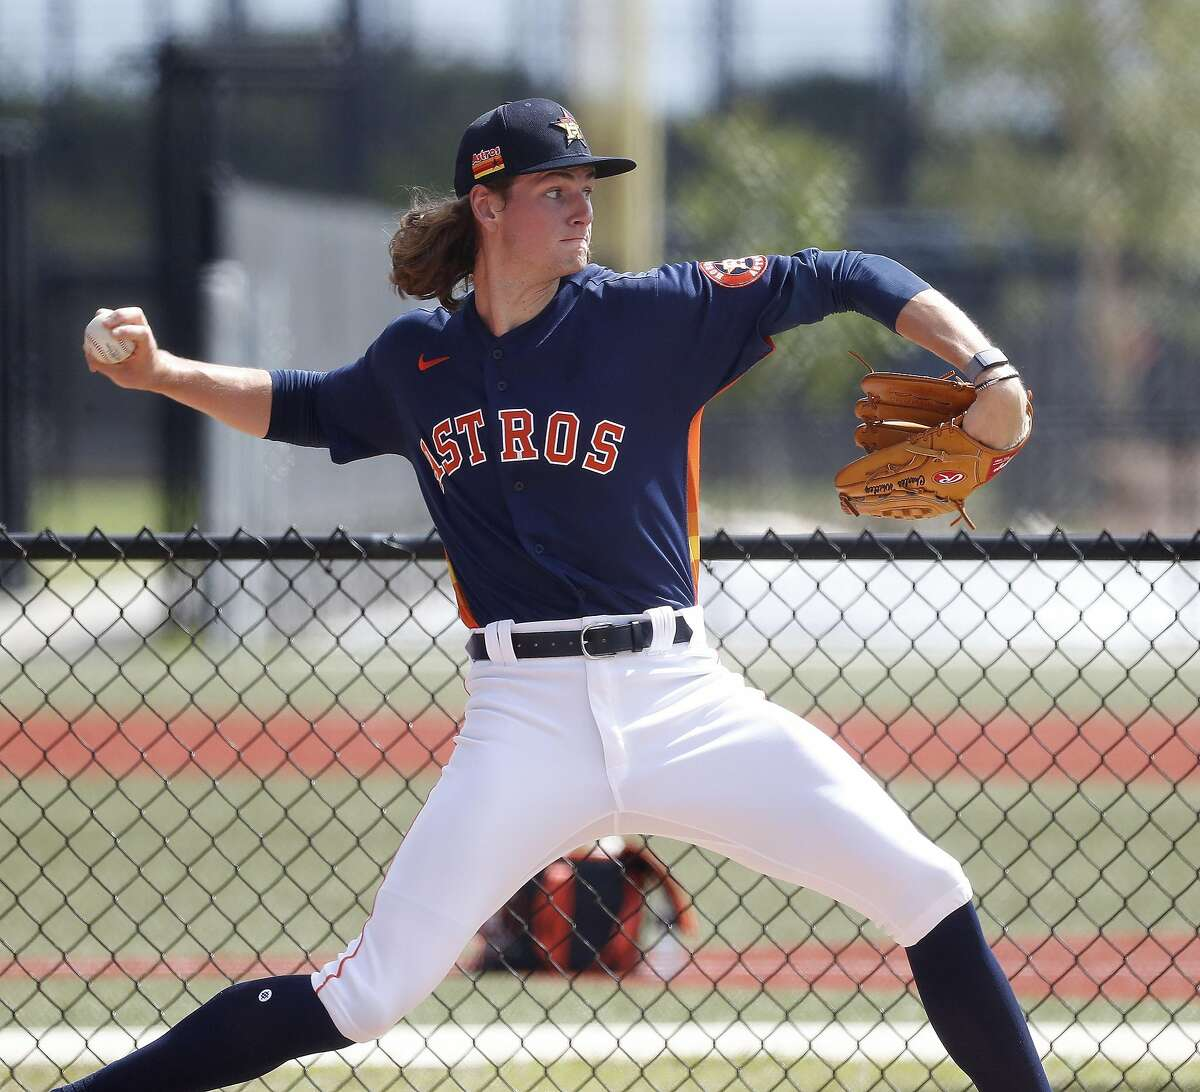 Houston Astros pitcher Forrest Whitley (61) during spring training workouts for the Astros at Ballpark of the Palm Beaches in West Palm Beach, Florida, Saturday, February 27, 2021.